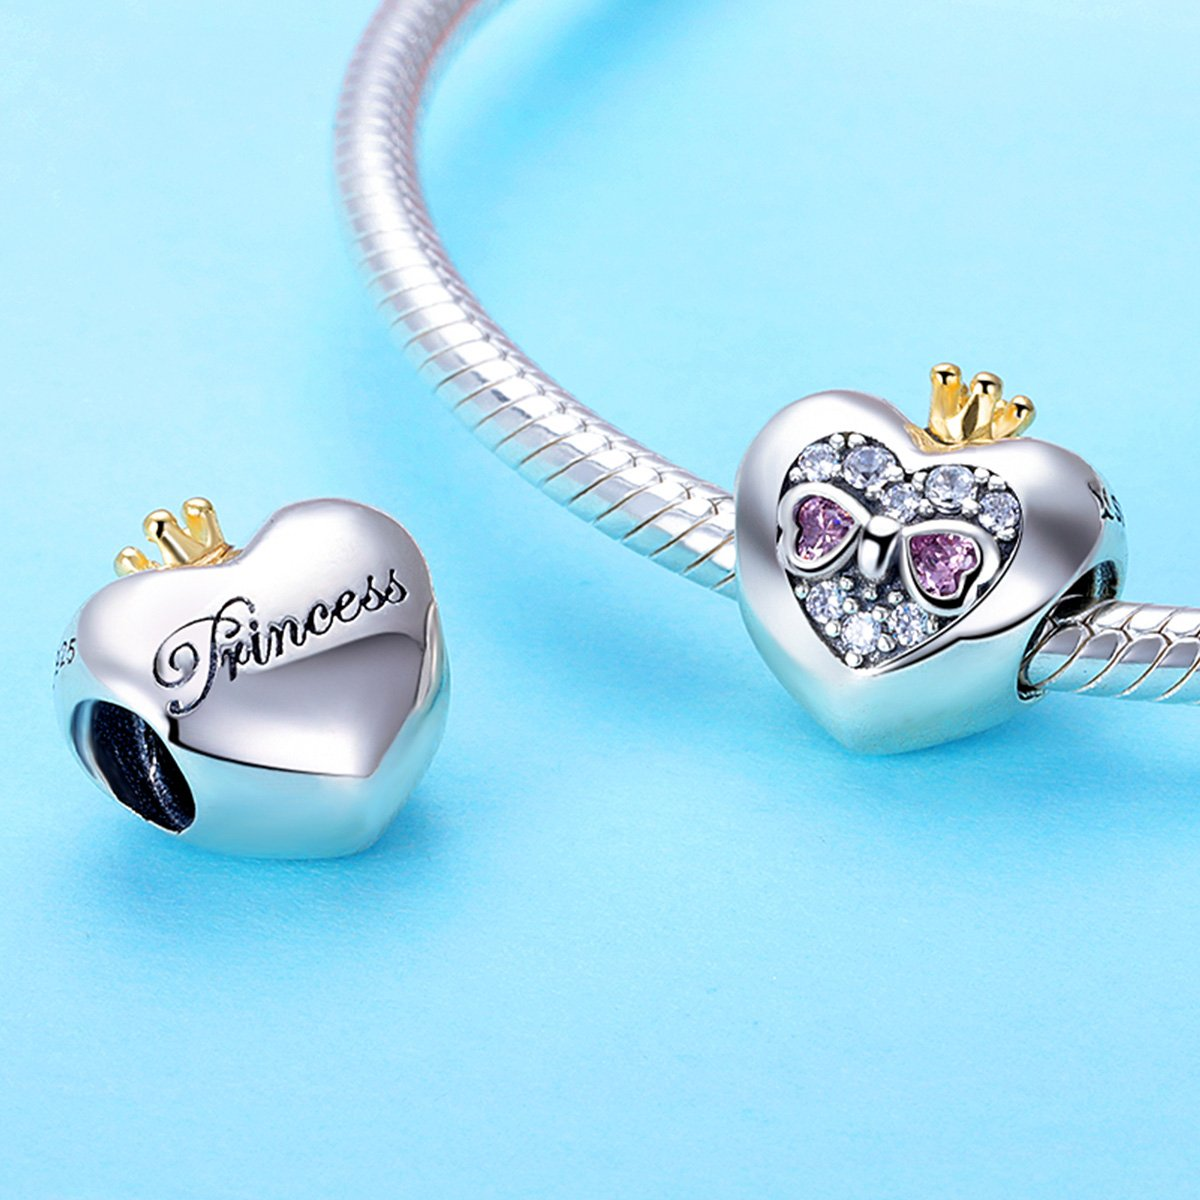 BAMOER Sterling Silver Heart of Princess Love CZ Bead Charm for DIY Snake Chain Bracelet by BAMOER (Image #4)